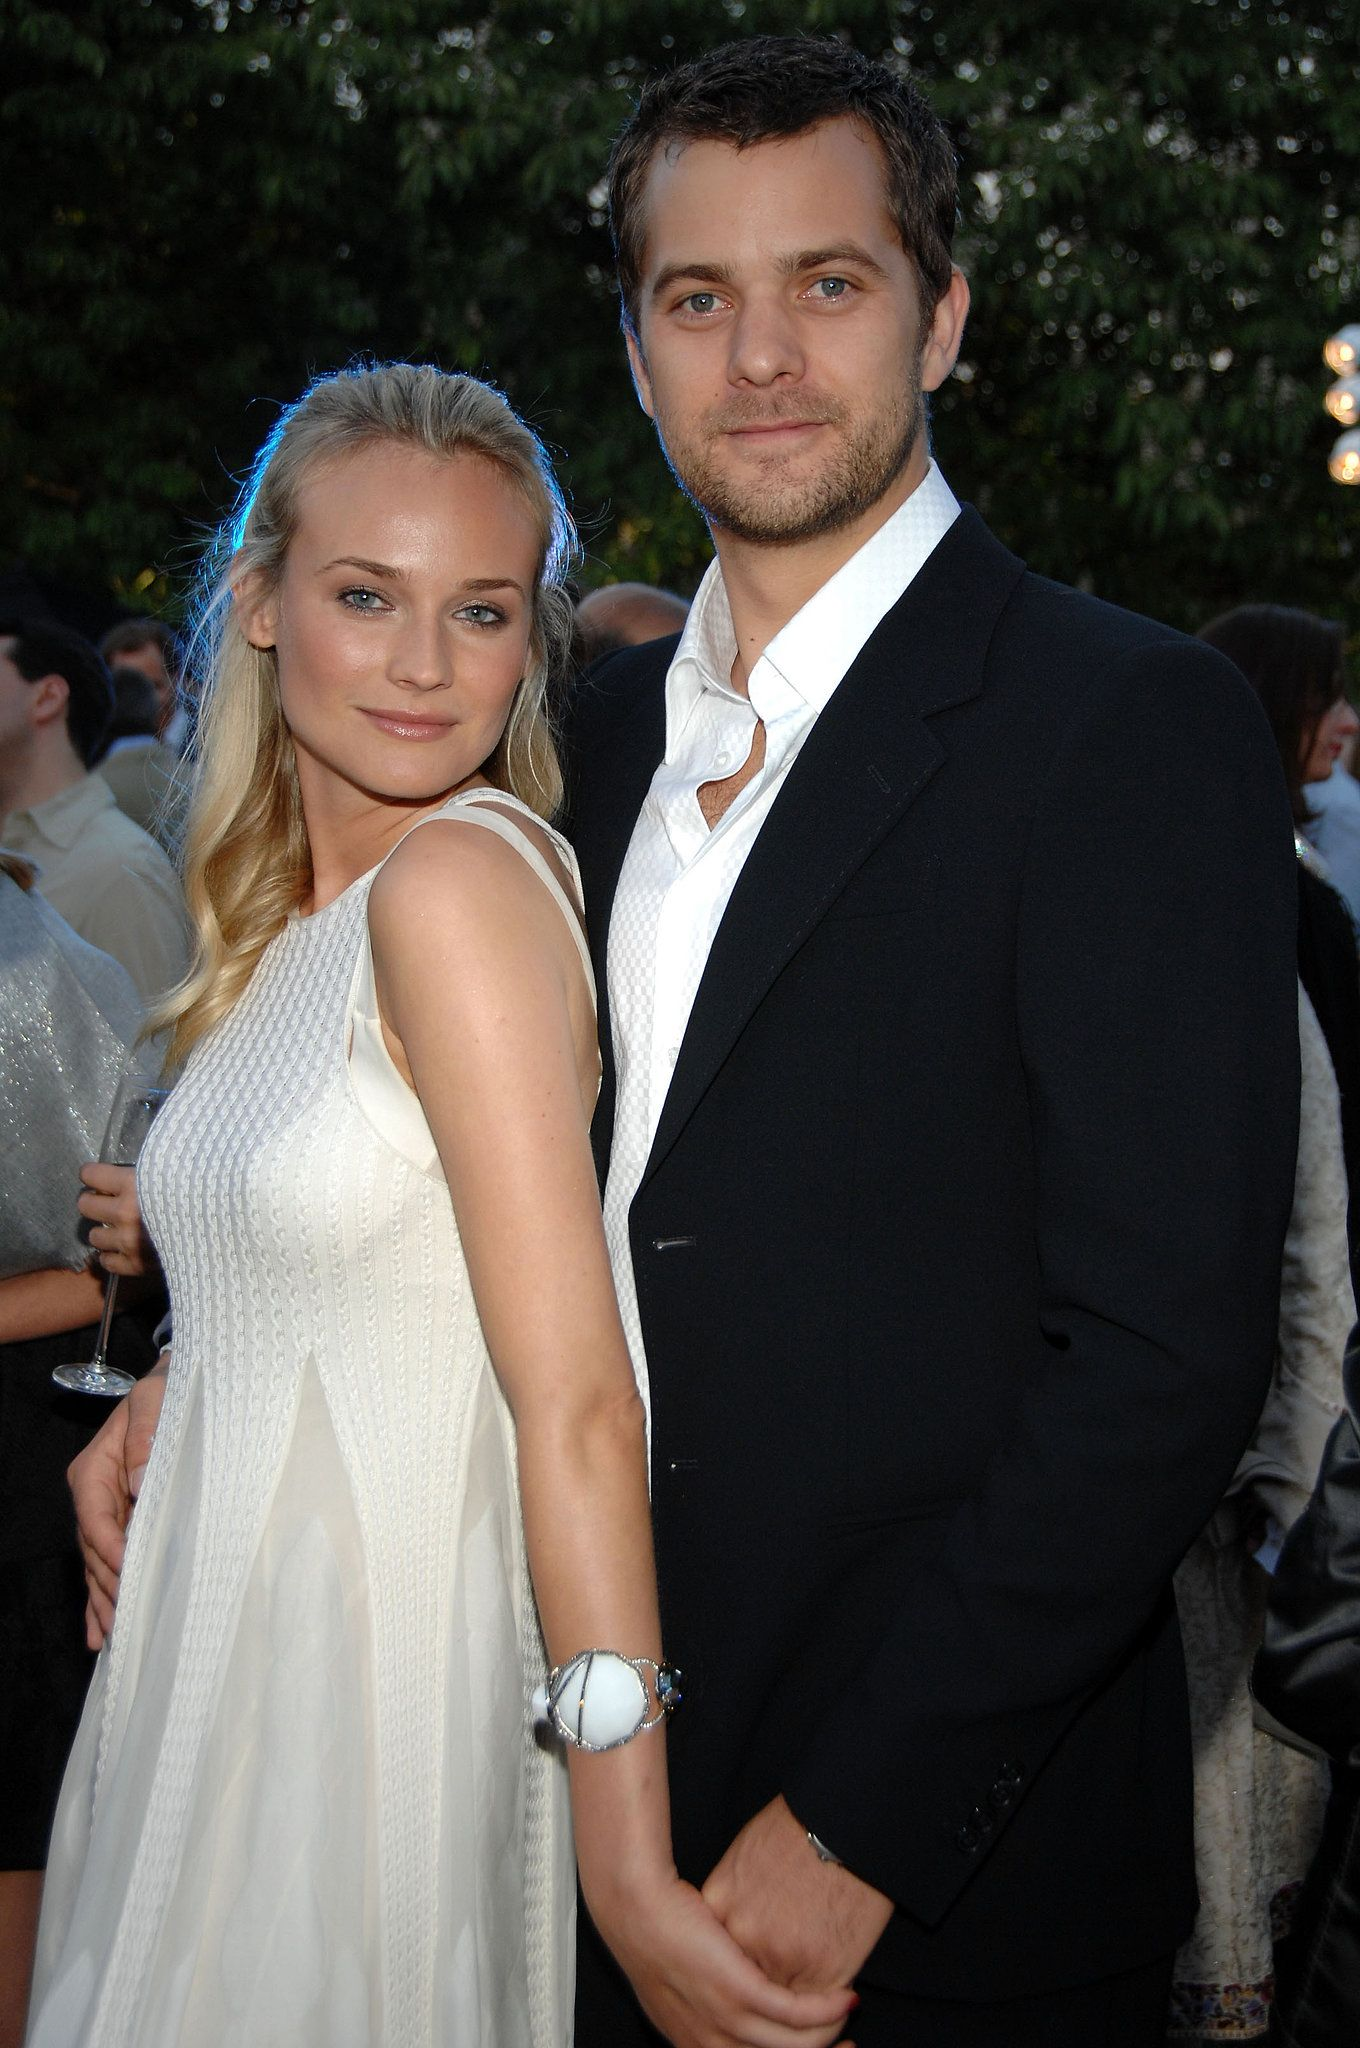 birthday girl diane kruger 39 s sweetest moments with joshua jackson diane kruger joshua jackson. Black Bedroom Furniture Sets. Home Design Ideas